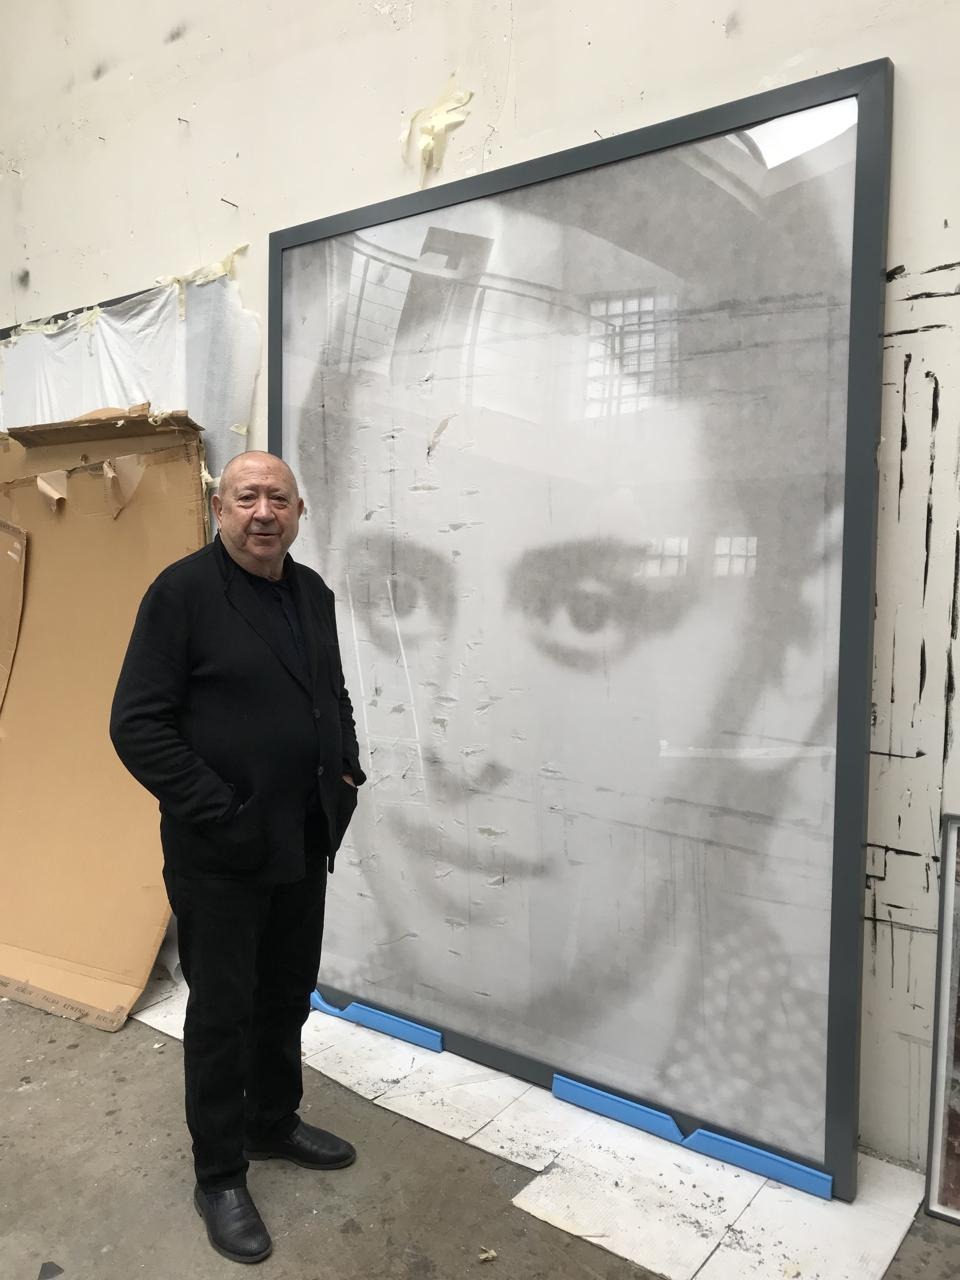 Christian Boltanski standing by a large printed photograph of a woman, in his studio.